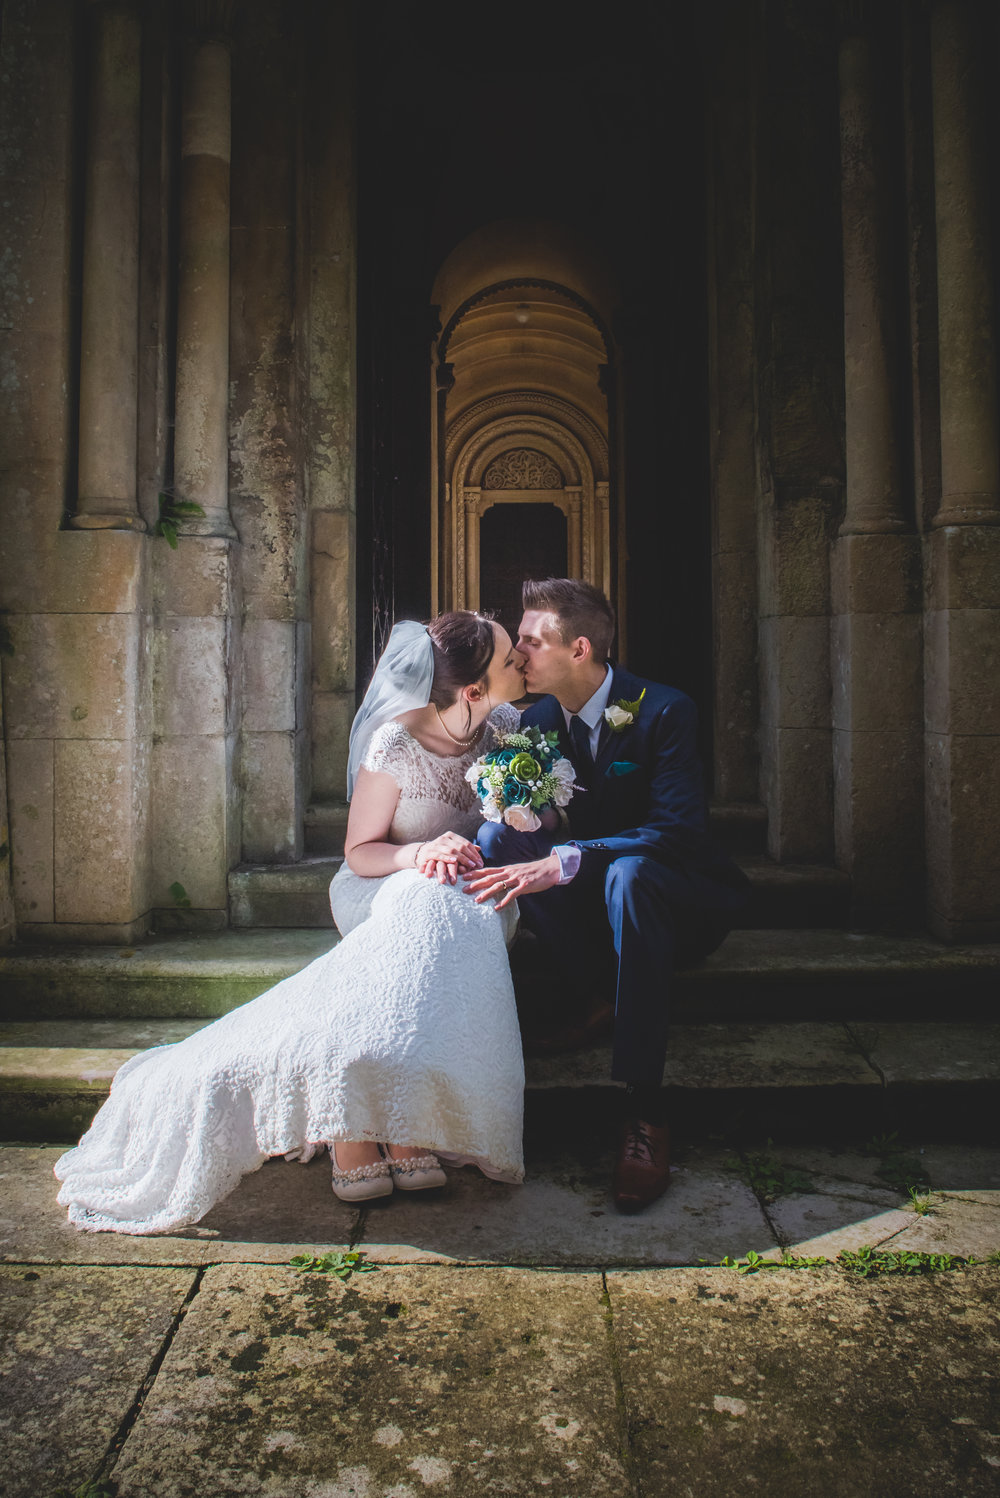 Mr & Mrs Whitaker - Full Day Package